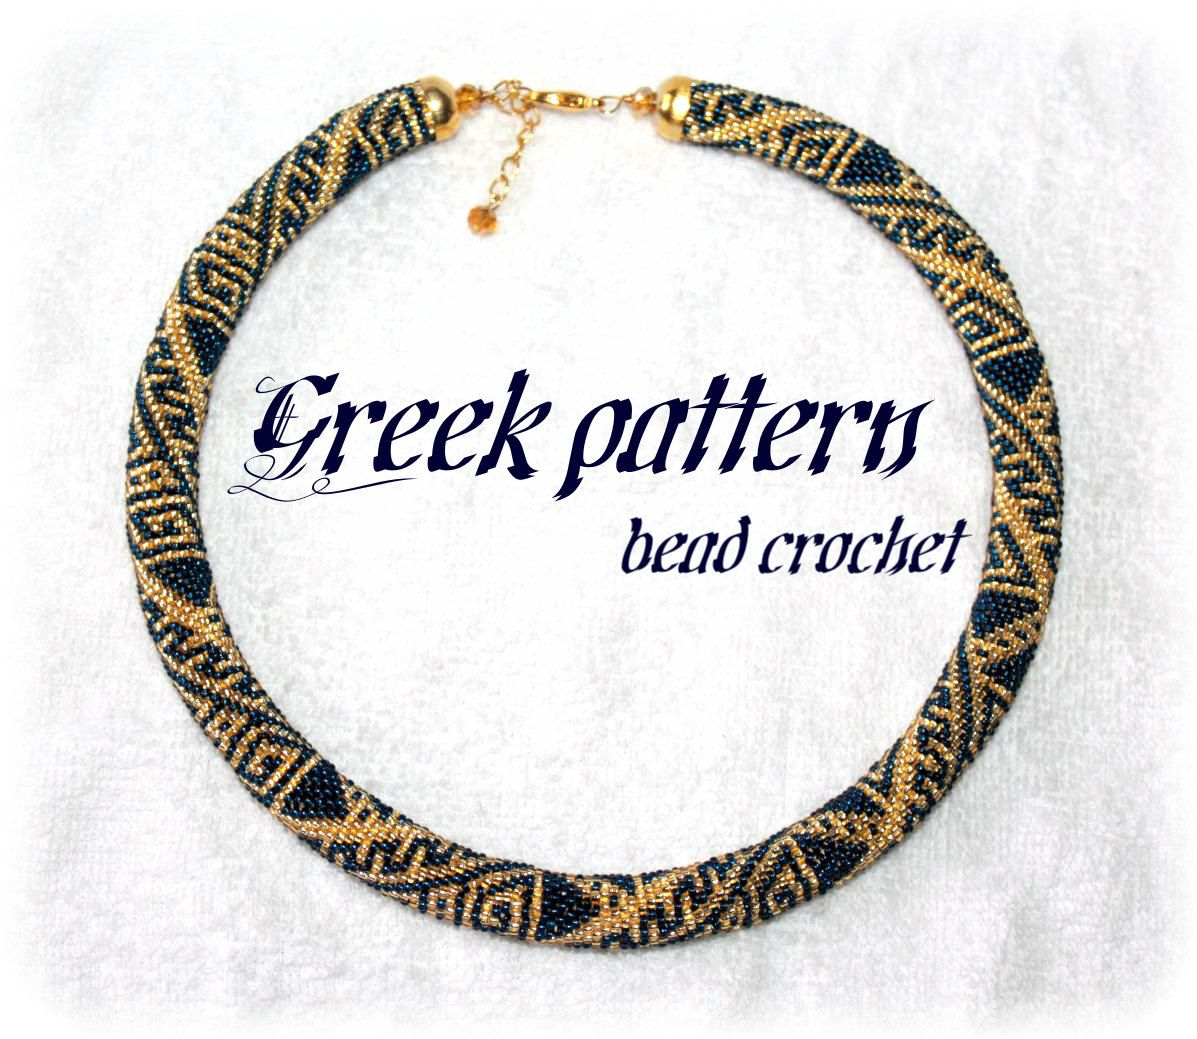 Greek Ornament Bead Crochet Rope Necklace Or Bracelet Pattern Etsy Bead Crochet Crochet Beaded Bracelets Crochet Rope